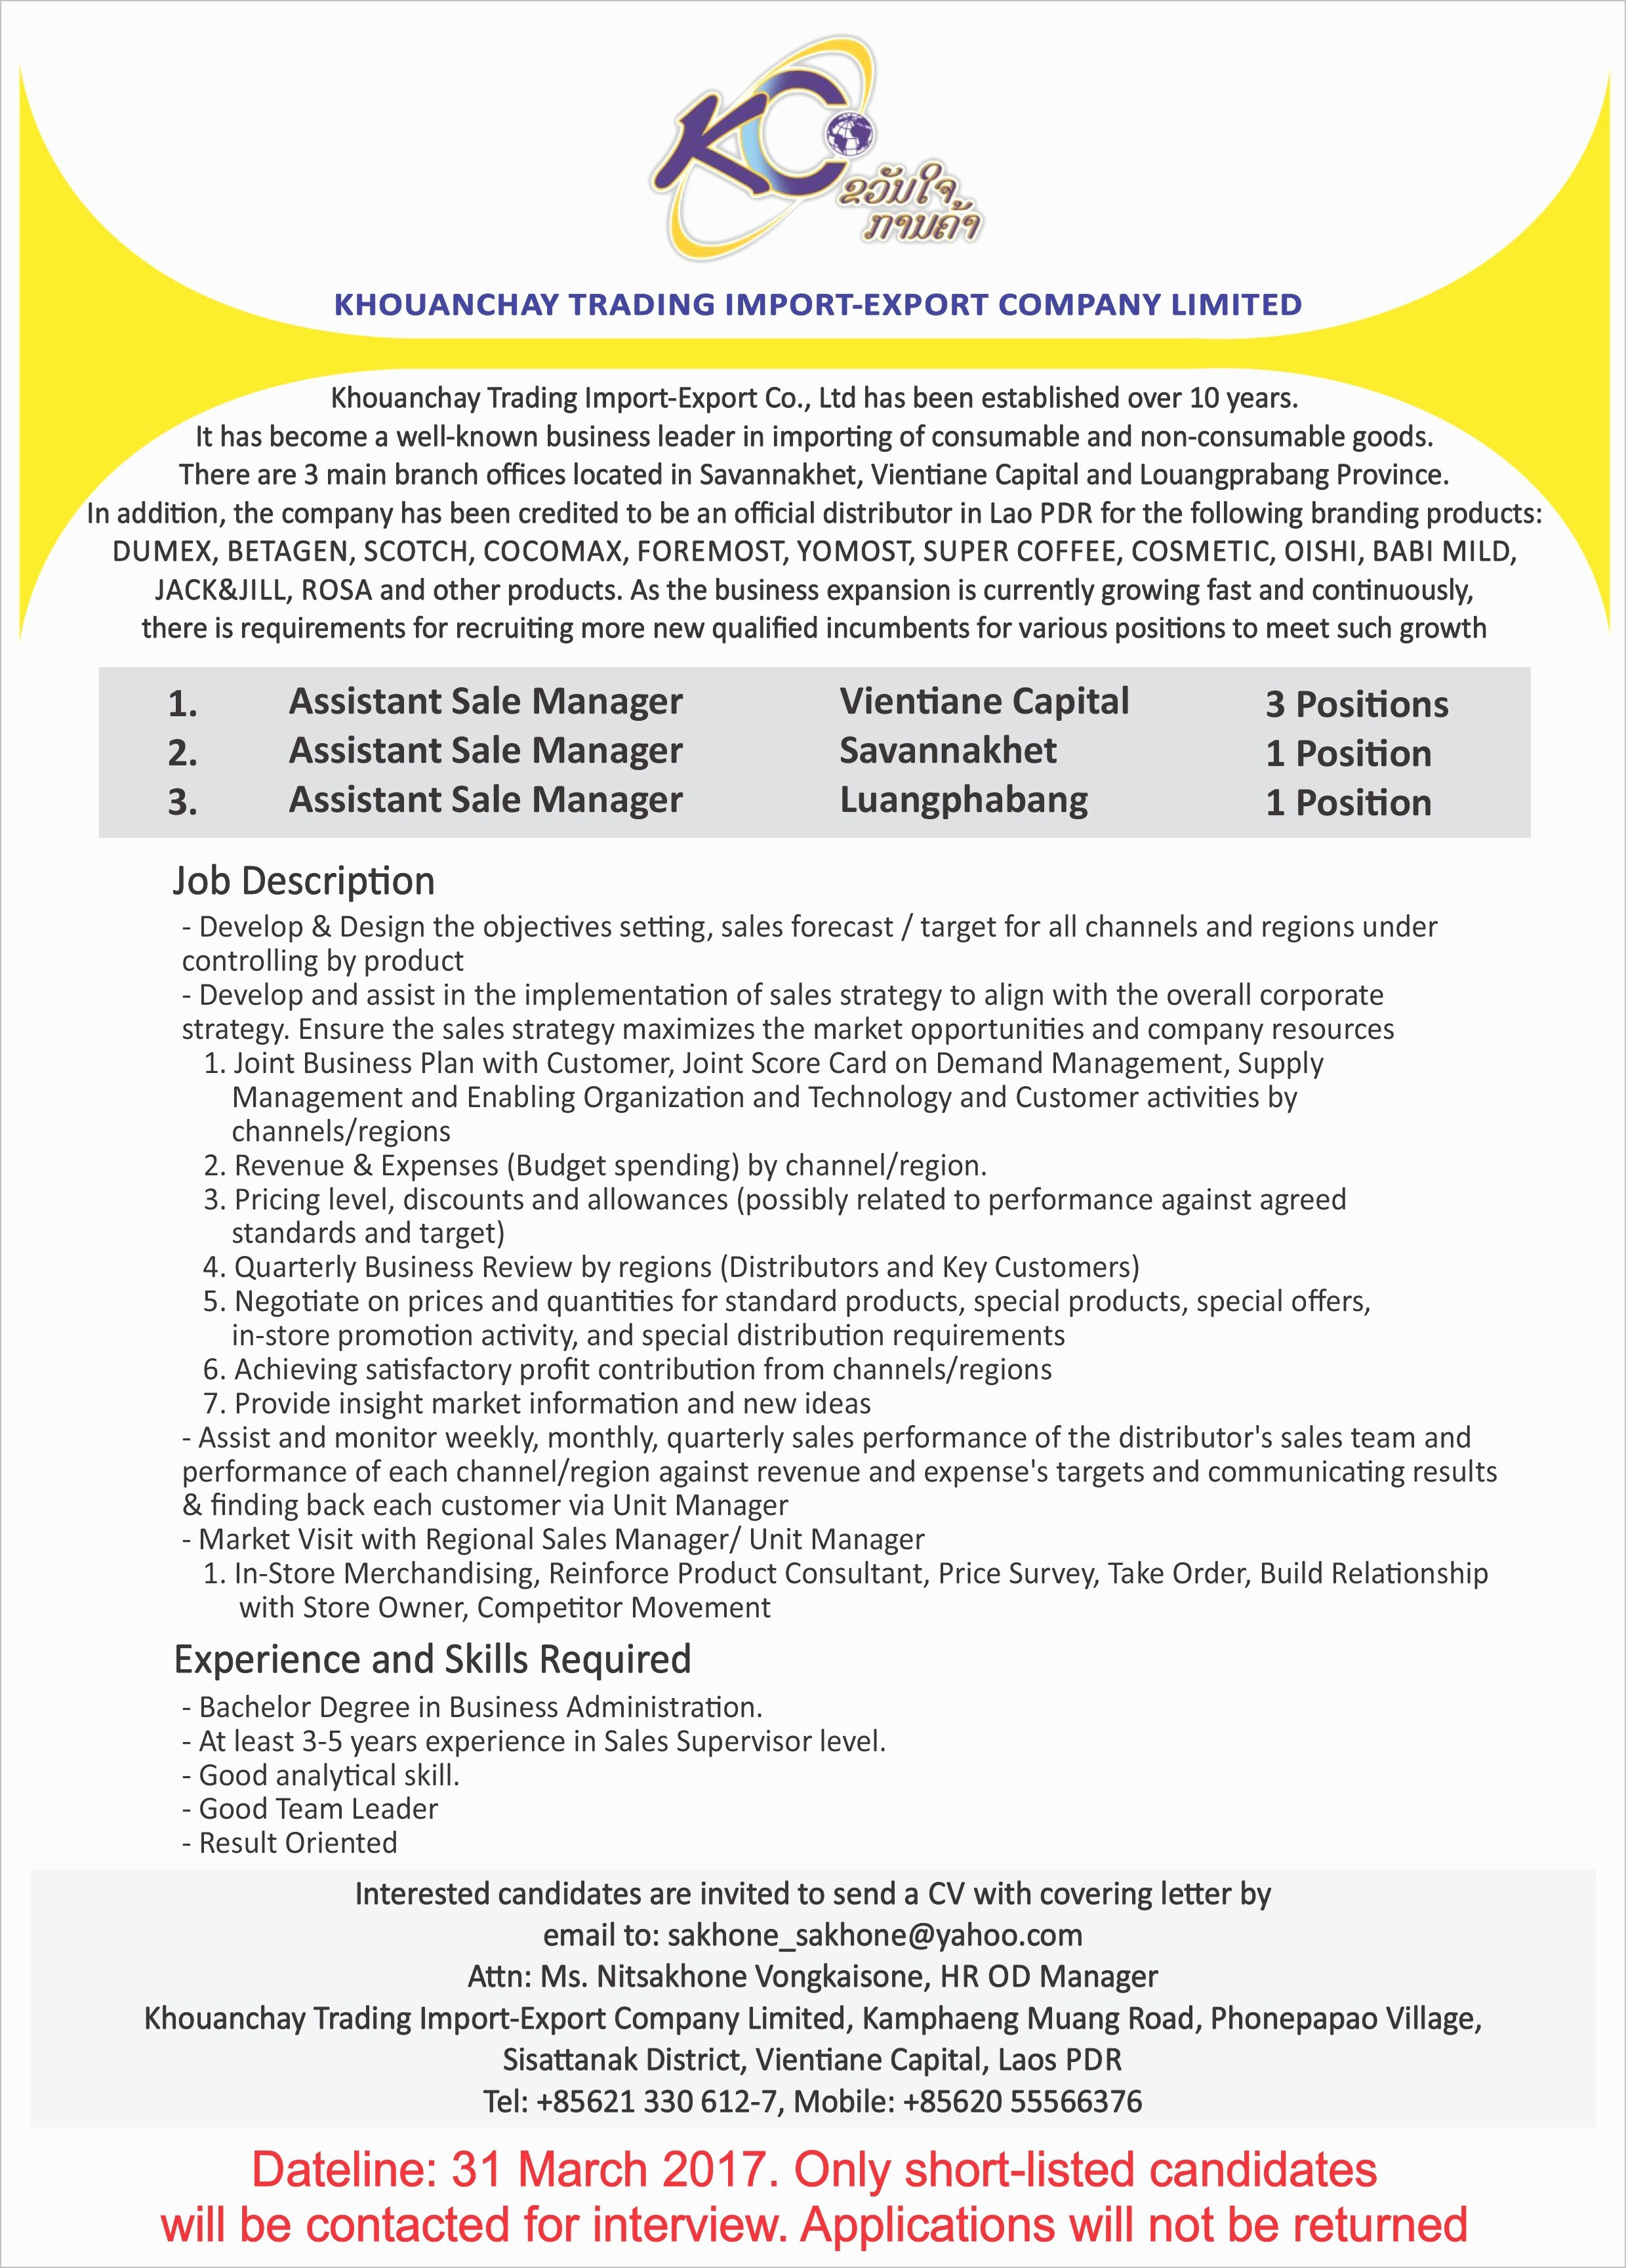 yahoo ceo resume template Collection-Yahoo Ceo Resume 10-m